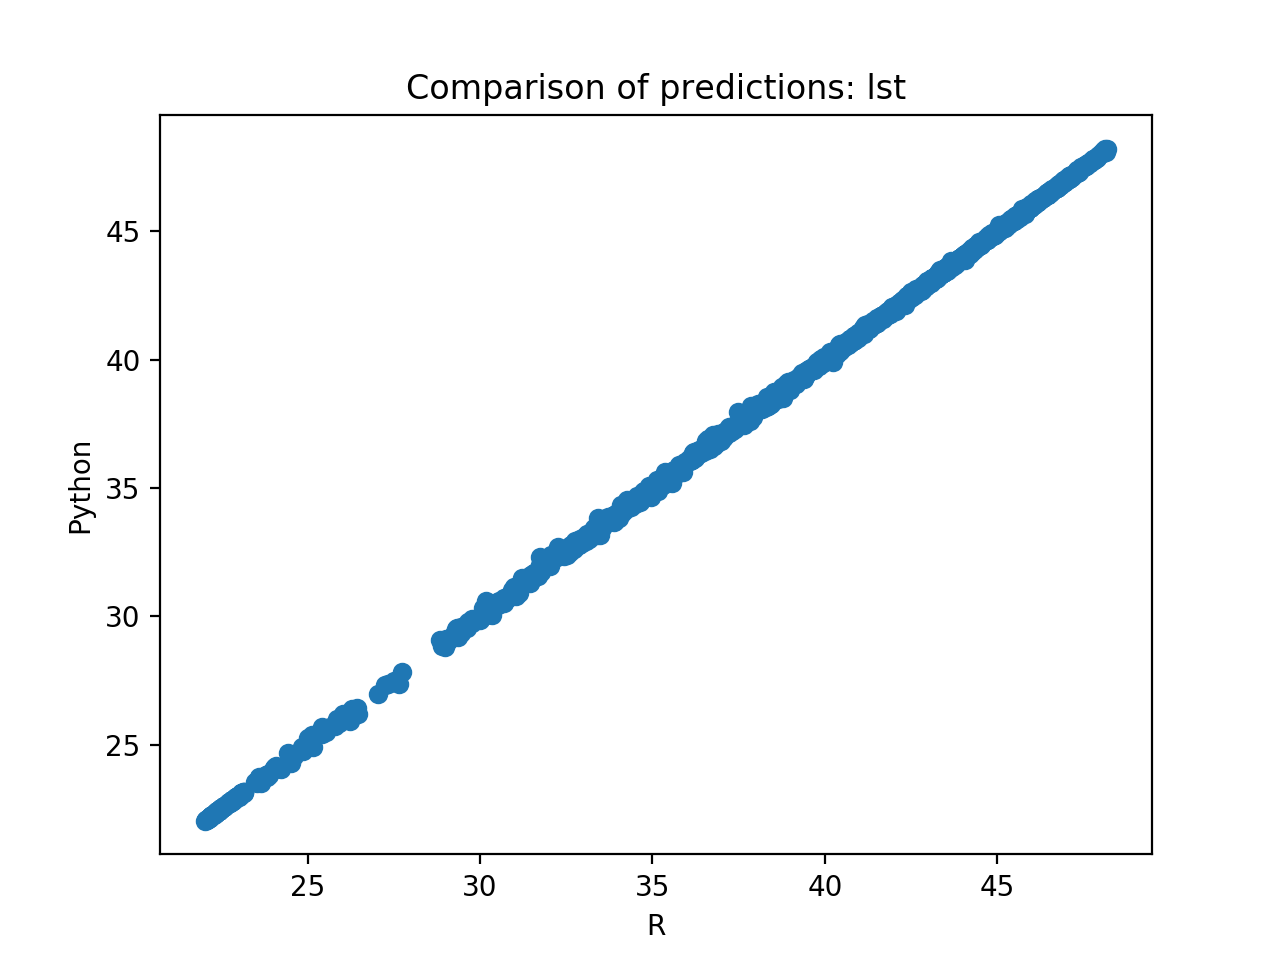 Python vs R: Random Forests